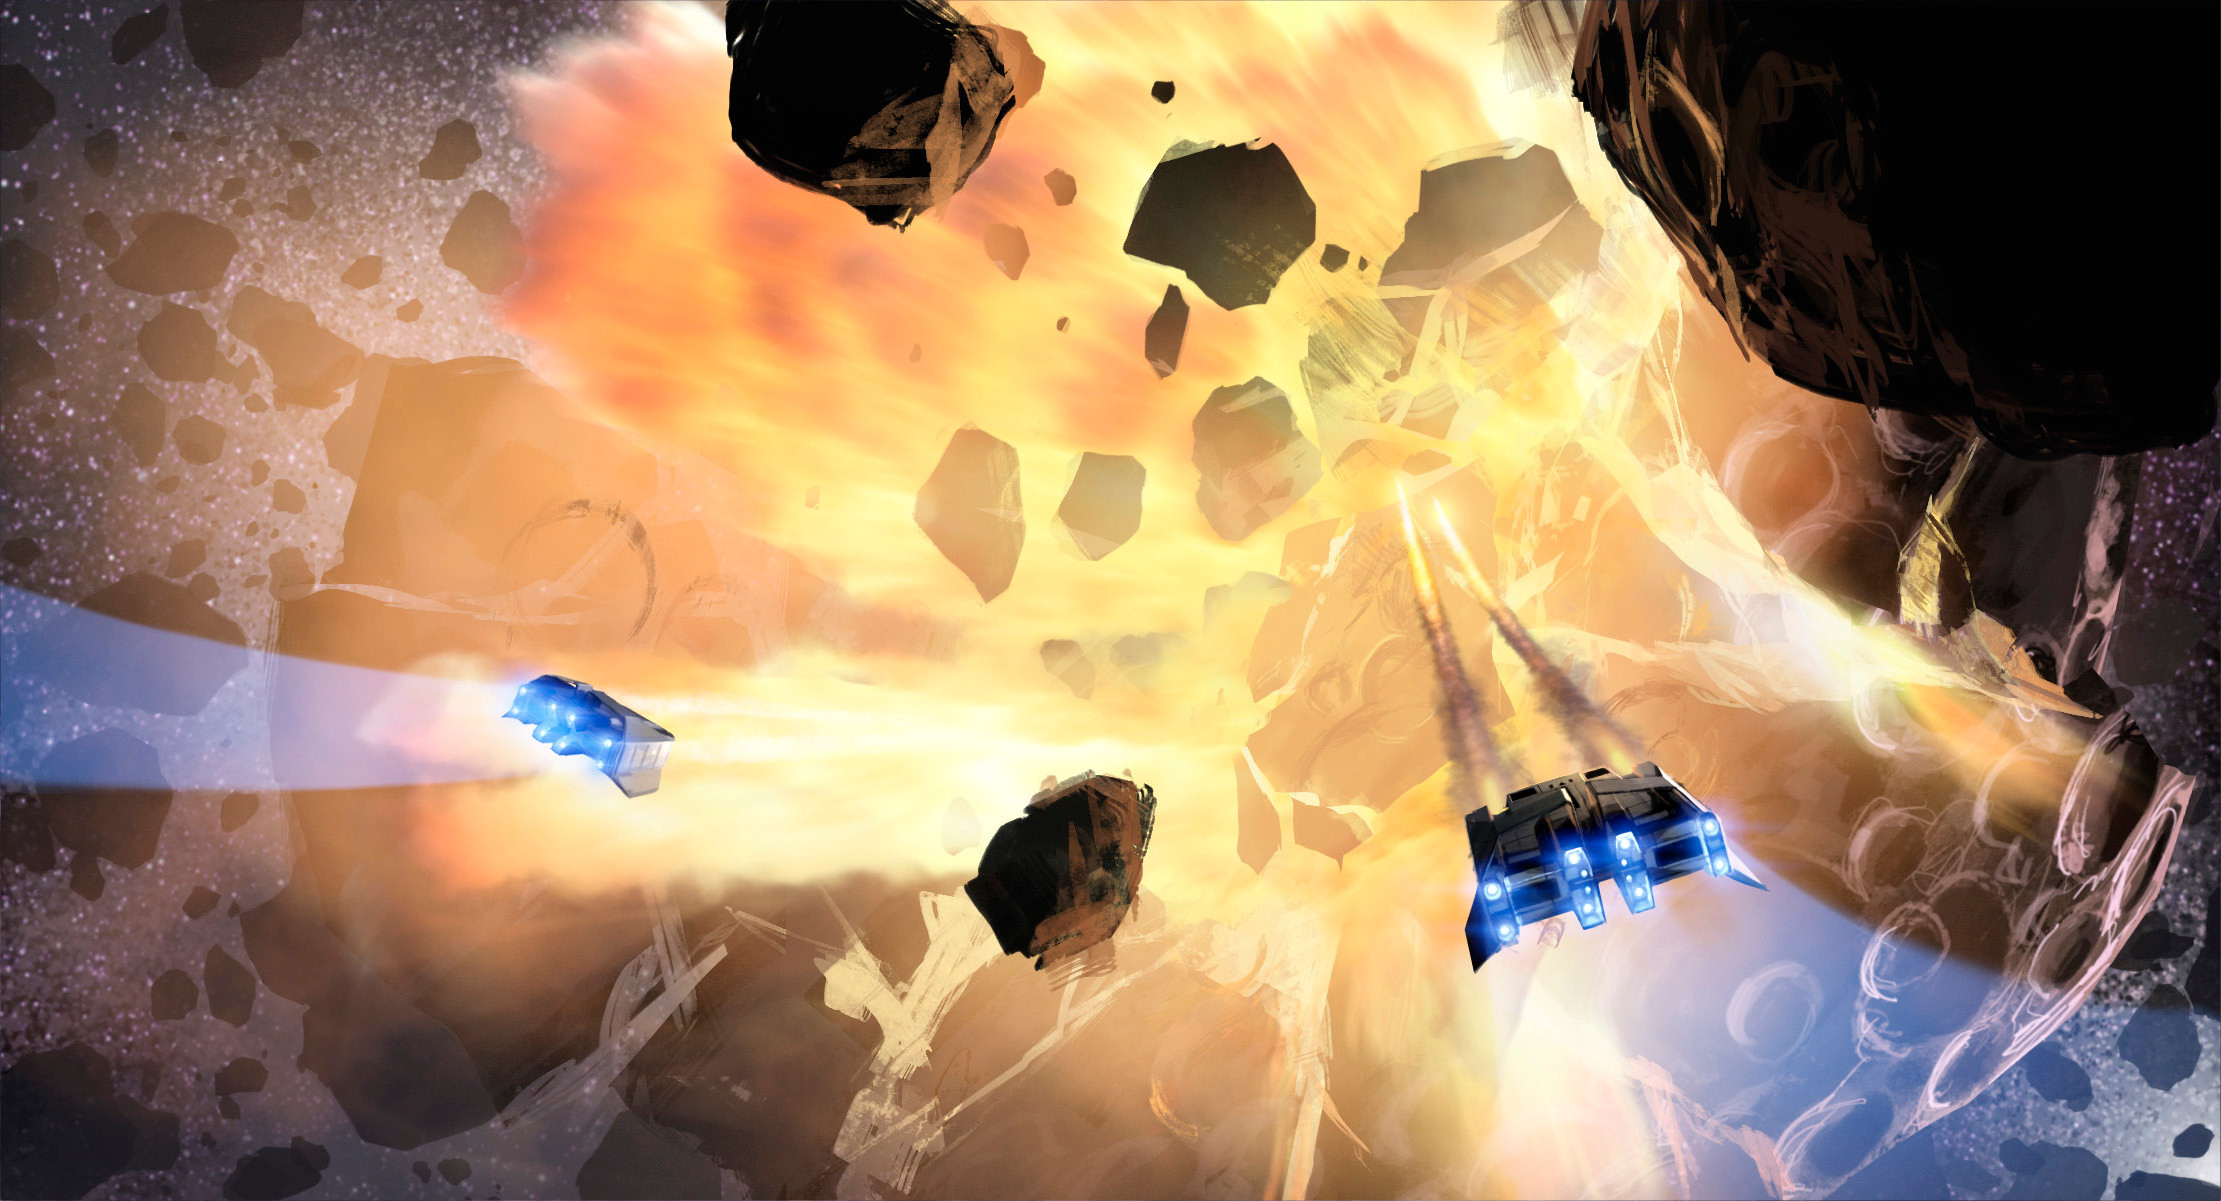 Before our Captain can raise an alarm—Our sister ship fires at the nearest giant asteroid, splitting it into pieces! Big mistake - A chain reaction of planetoid collisions has been set in motion and we are in the middle of it.